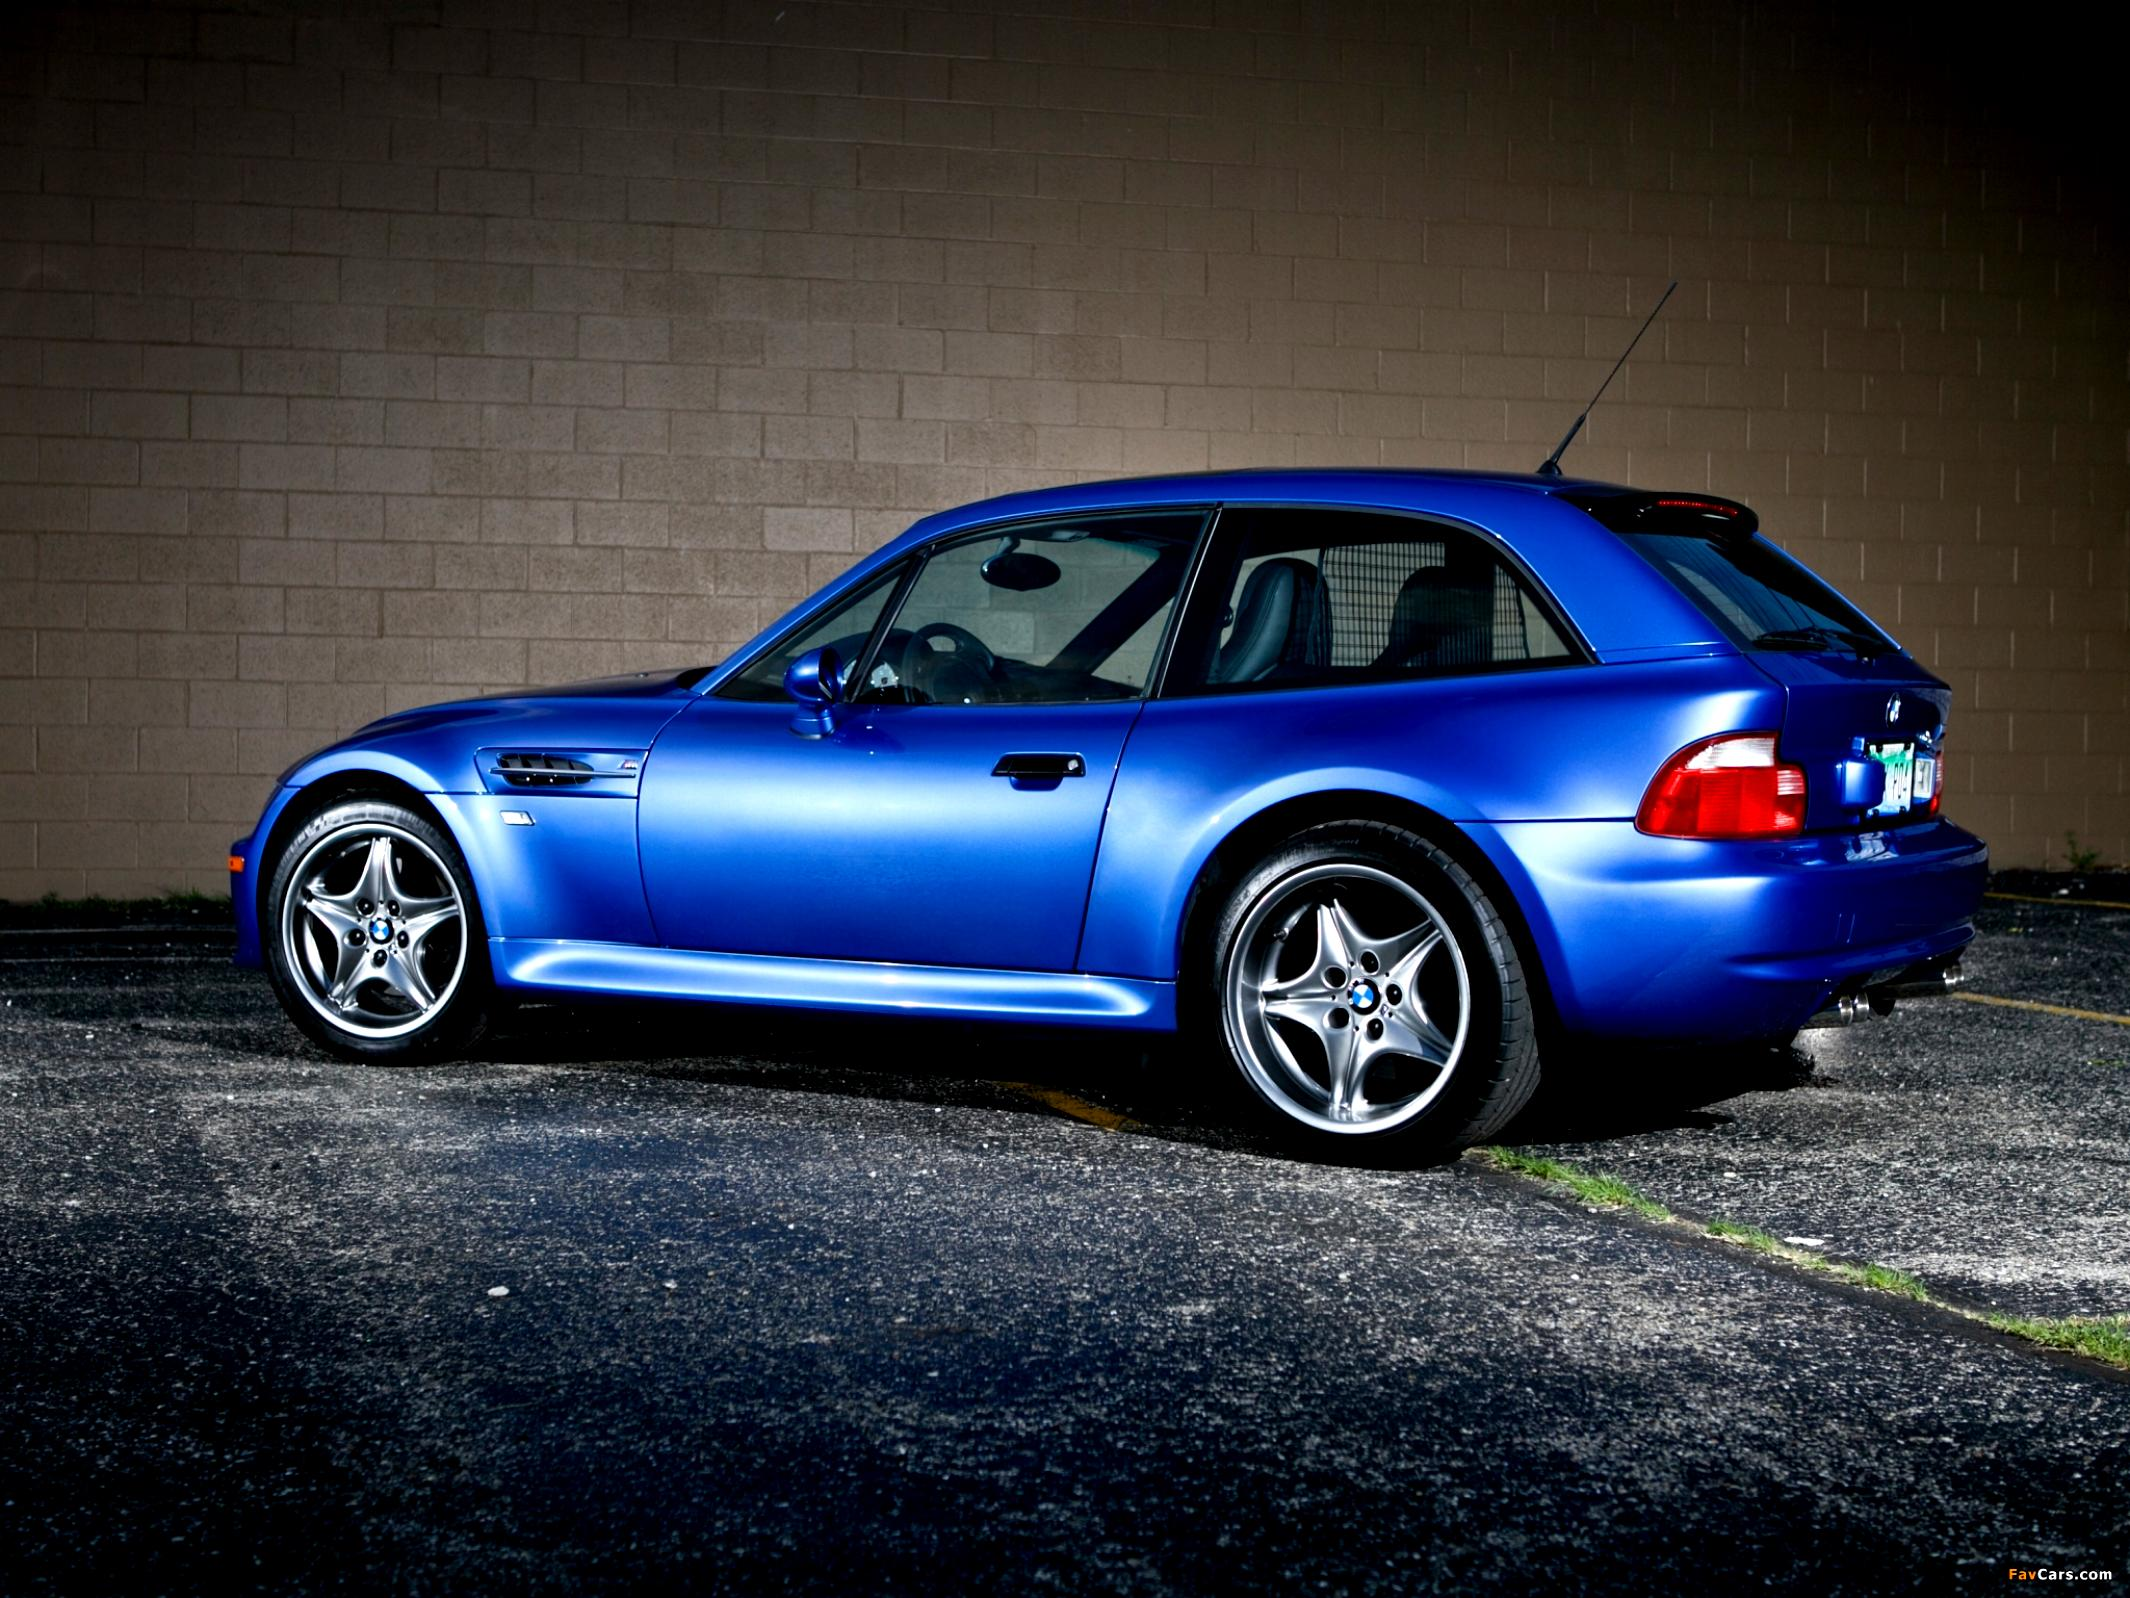 Bmw Z3 Coupe Bmw Z3 Coupe E36 1998 Photos 6 On Motoimg Com Bmw Photo Gallery Bimmertoday